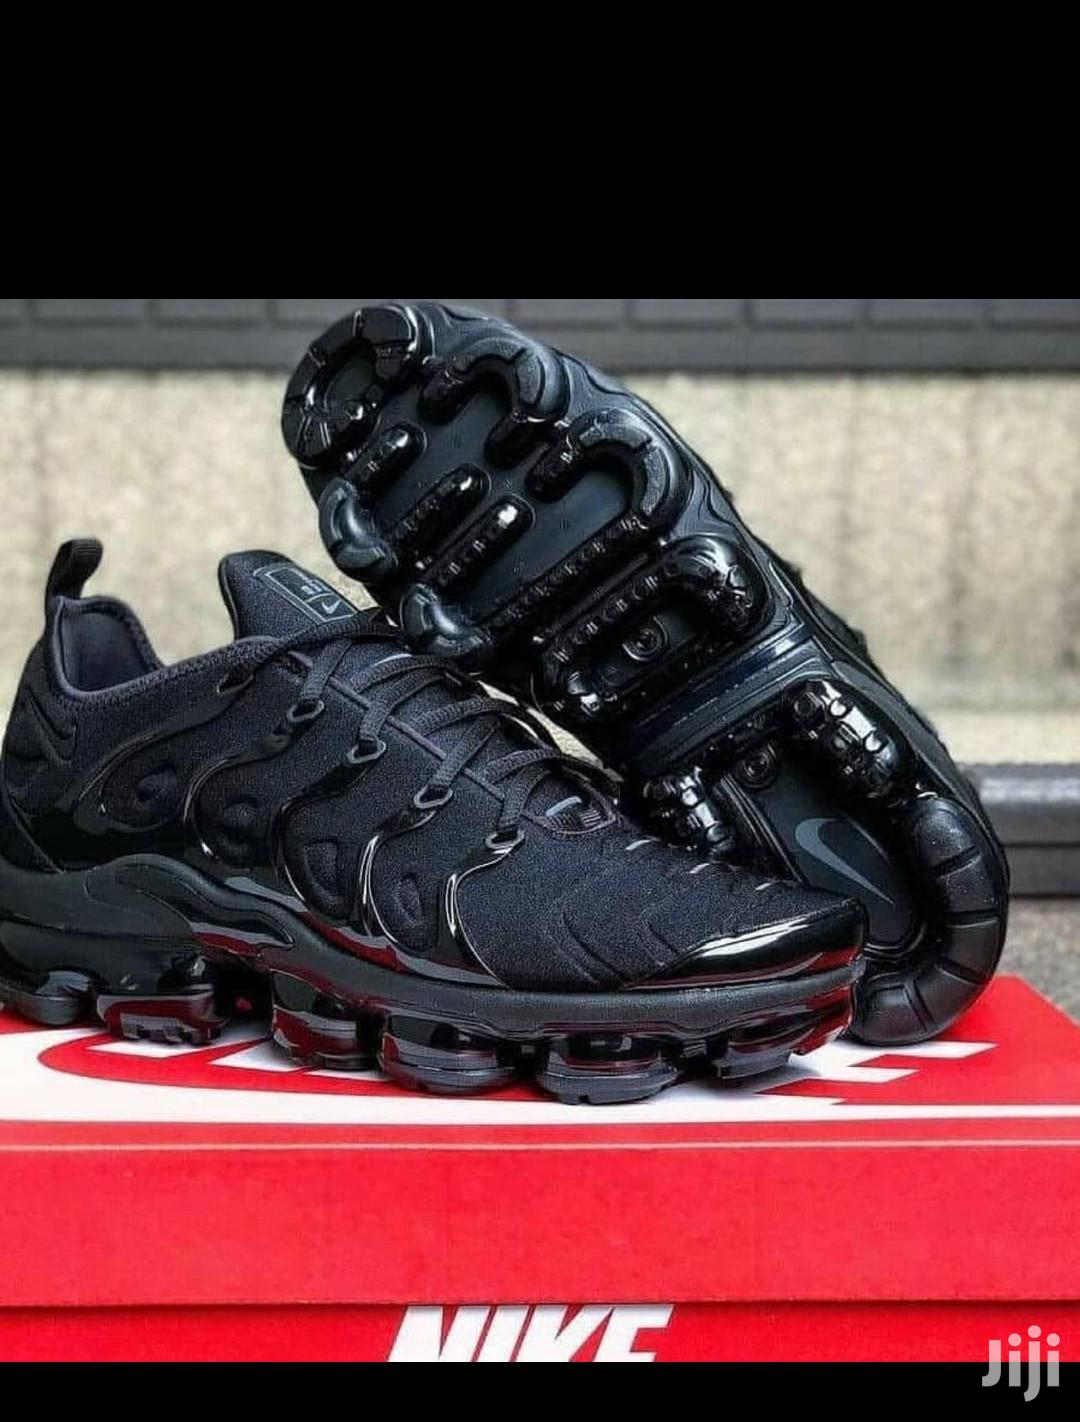 Nike Airmax Black Sneakers | Shoes for sale in Surulere, Lagos State, Nigeria